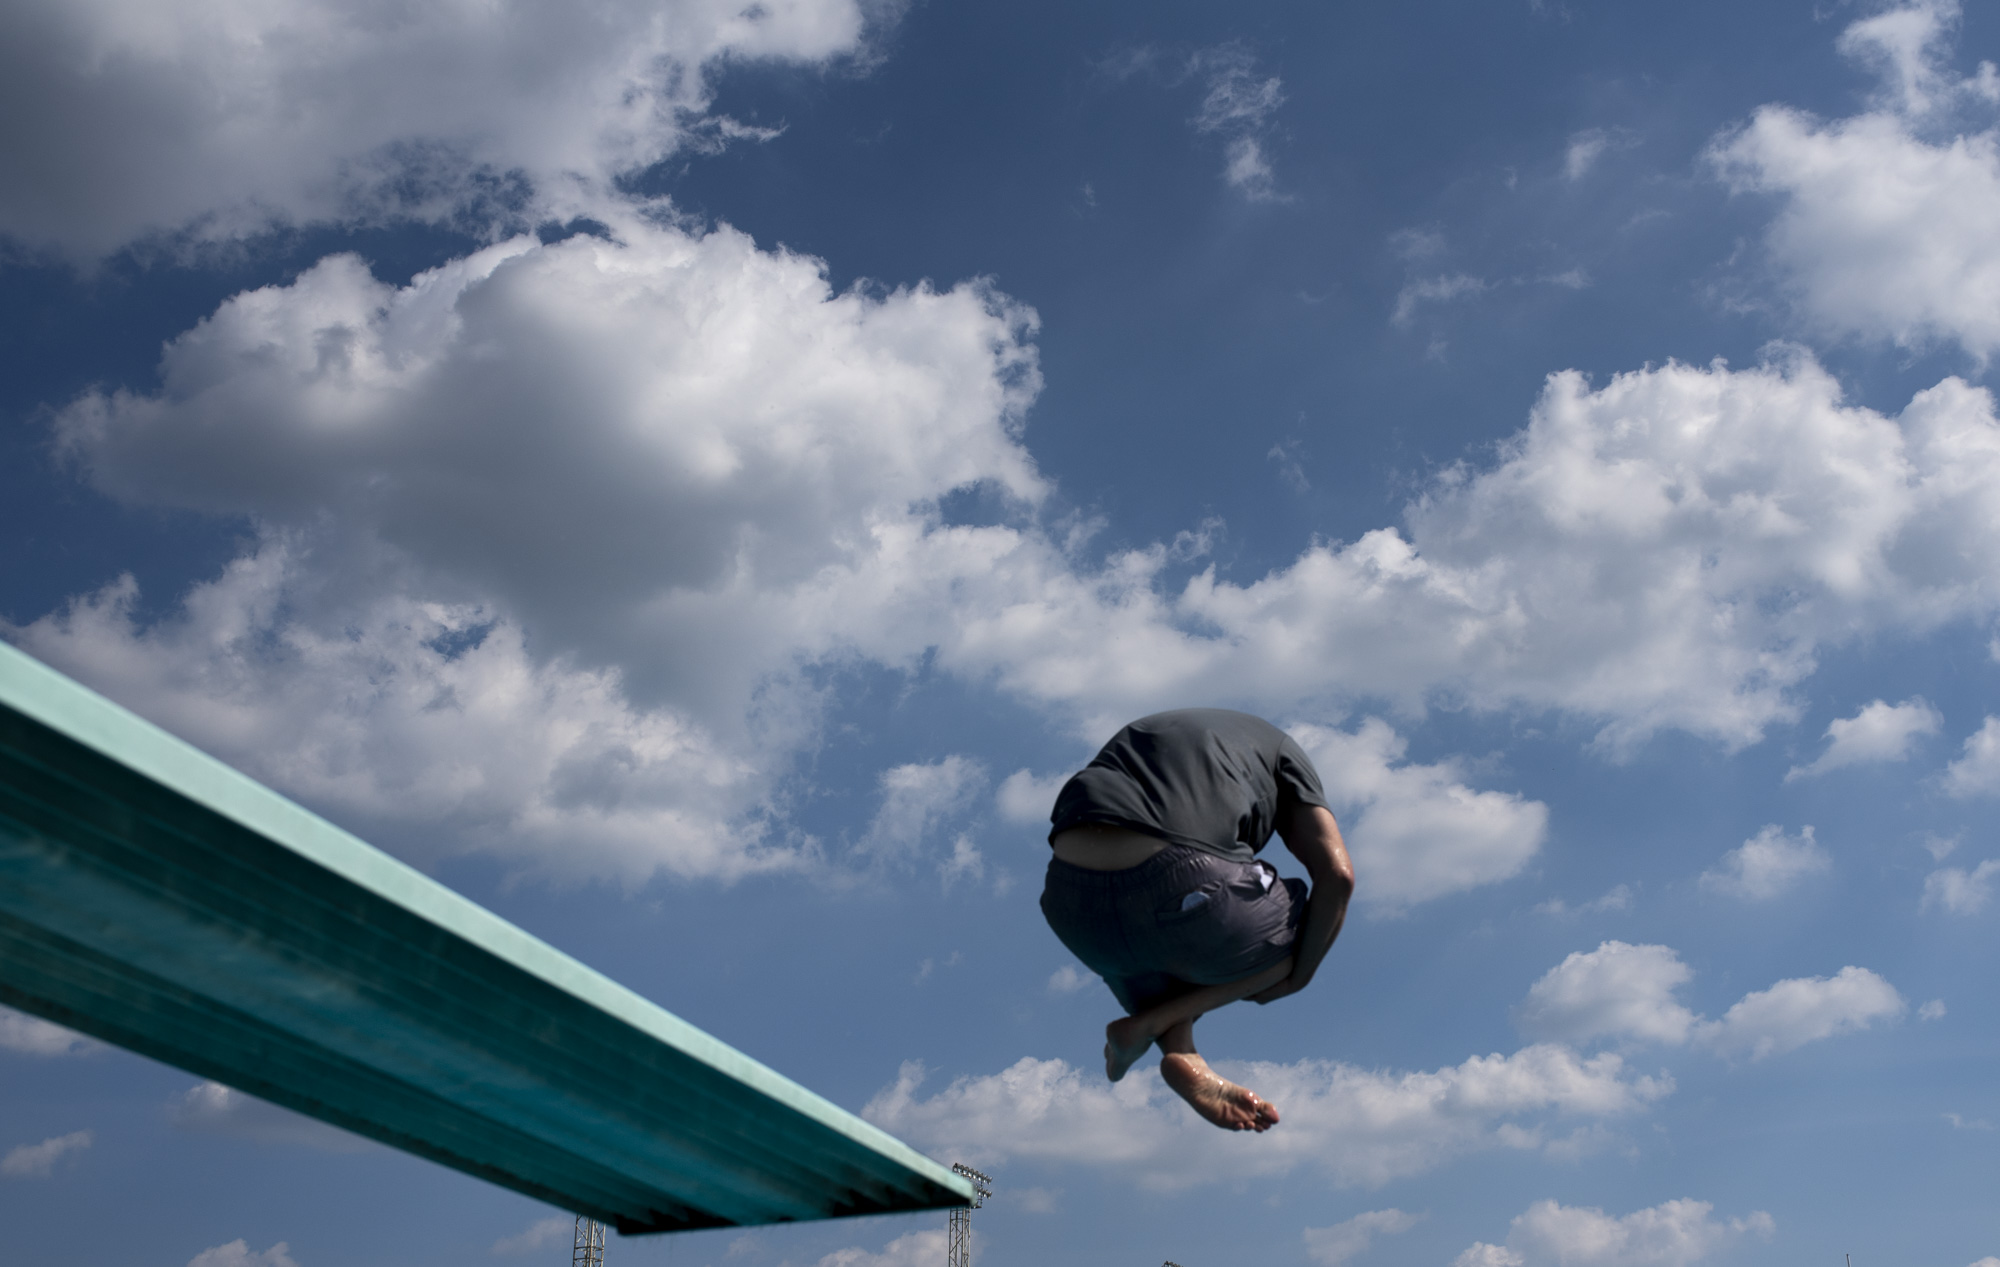 Joe LeBlanc, of Latrobe, jumps off of the diving board at the Latrobe Community pool with on Friday, June 29, 2018.